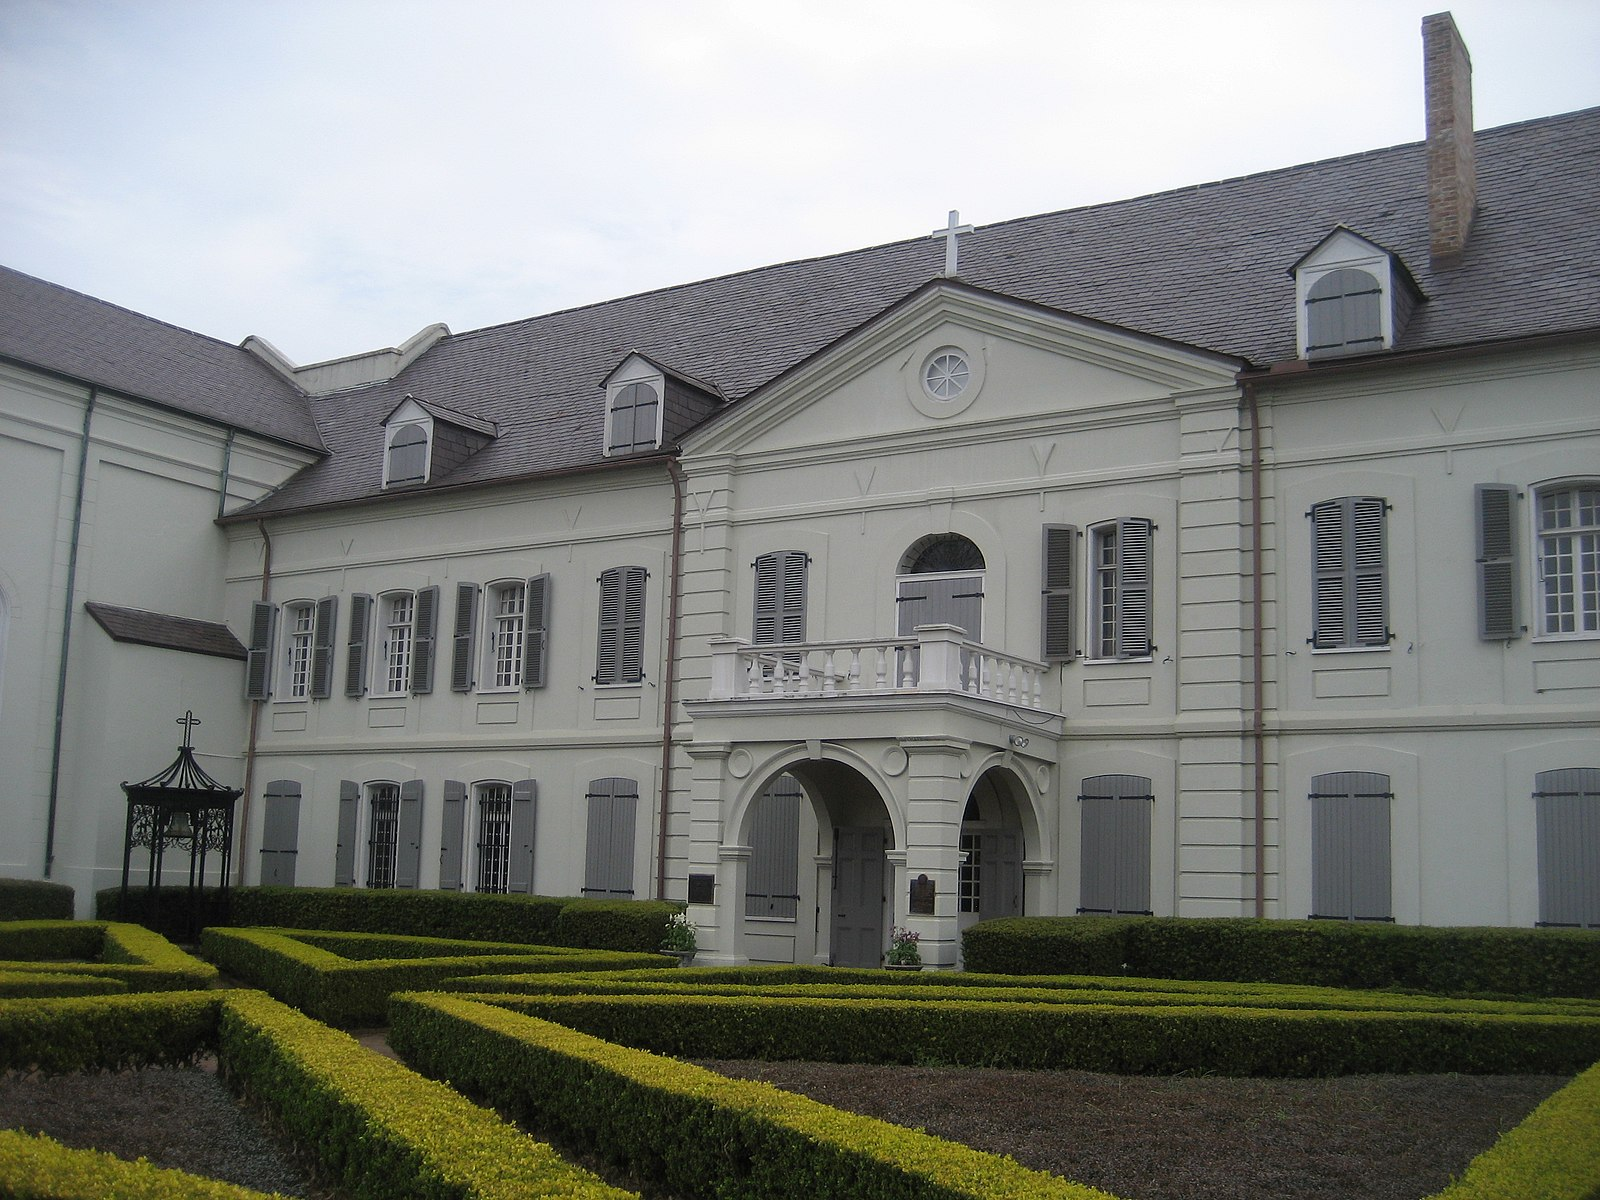 Old Ursuline Convent  Photo by Infrogmation/CCA-SA 3.0